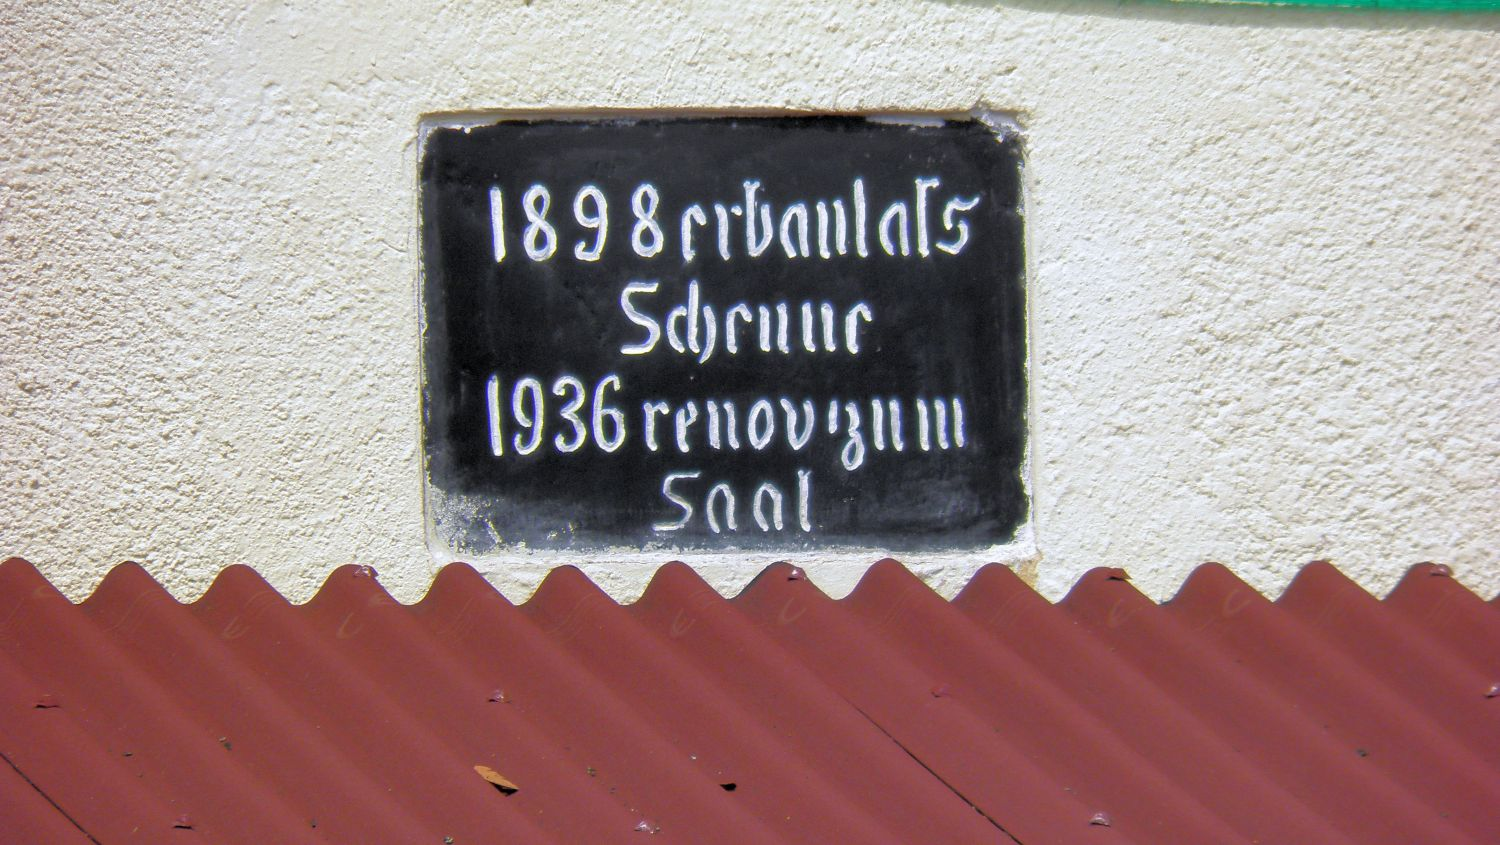 Inscription on the Transylvanian Saxons Hall